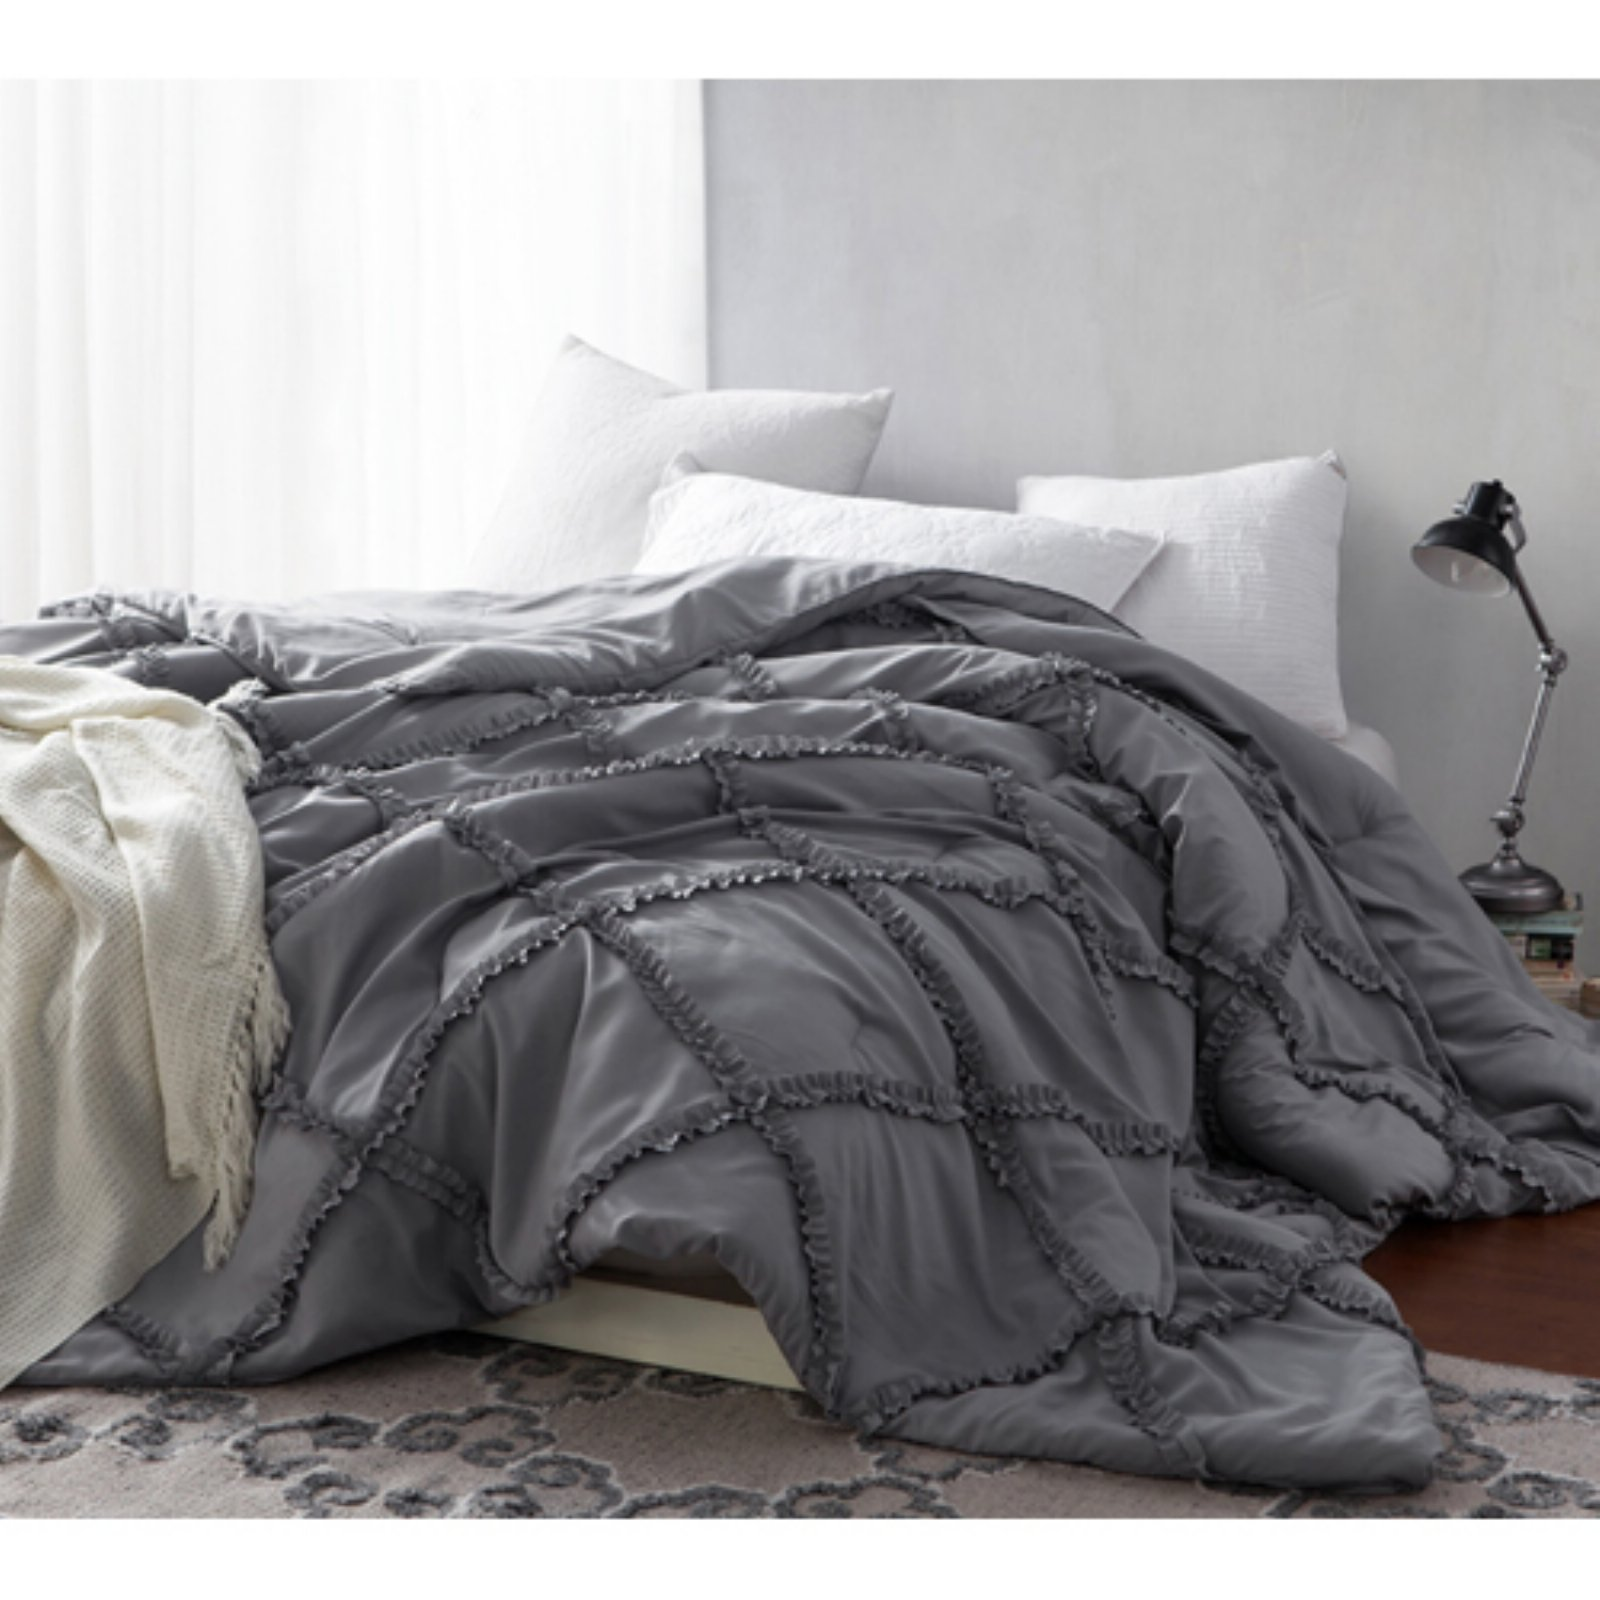 341e583fb9 Handcrafted Series Gathered Ruffles Oversized Comforter by Byourbed Alloy  Bedroom Ideas, Bedding, Online Shopping